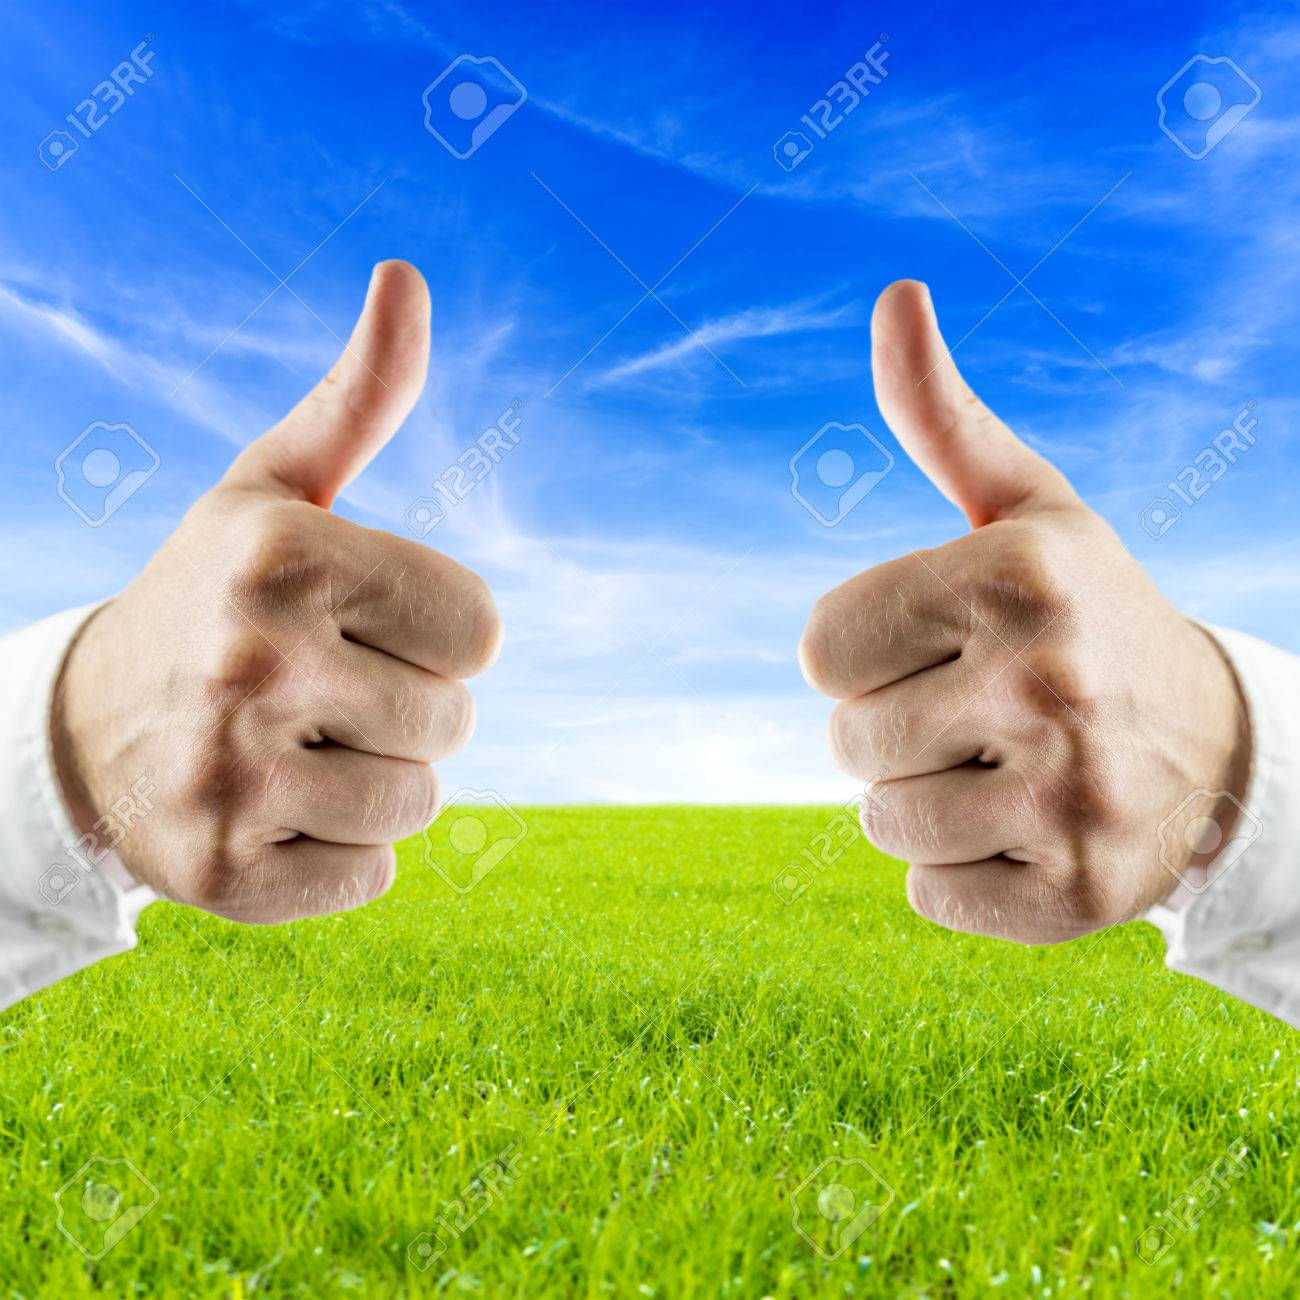 Closeup of male hand showing thumbs up sign with beautiful nature in background. Concept of saving the planet. Stock Photo - 24360866